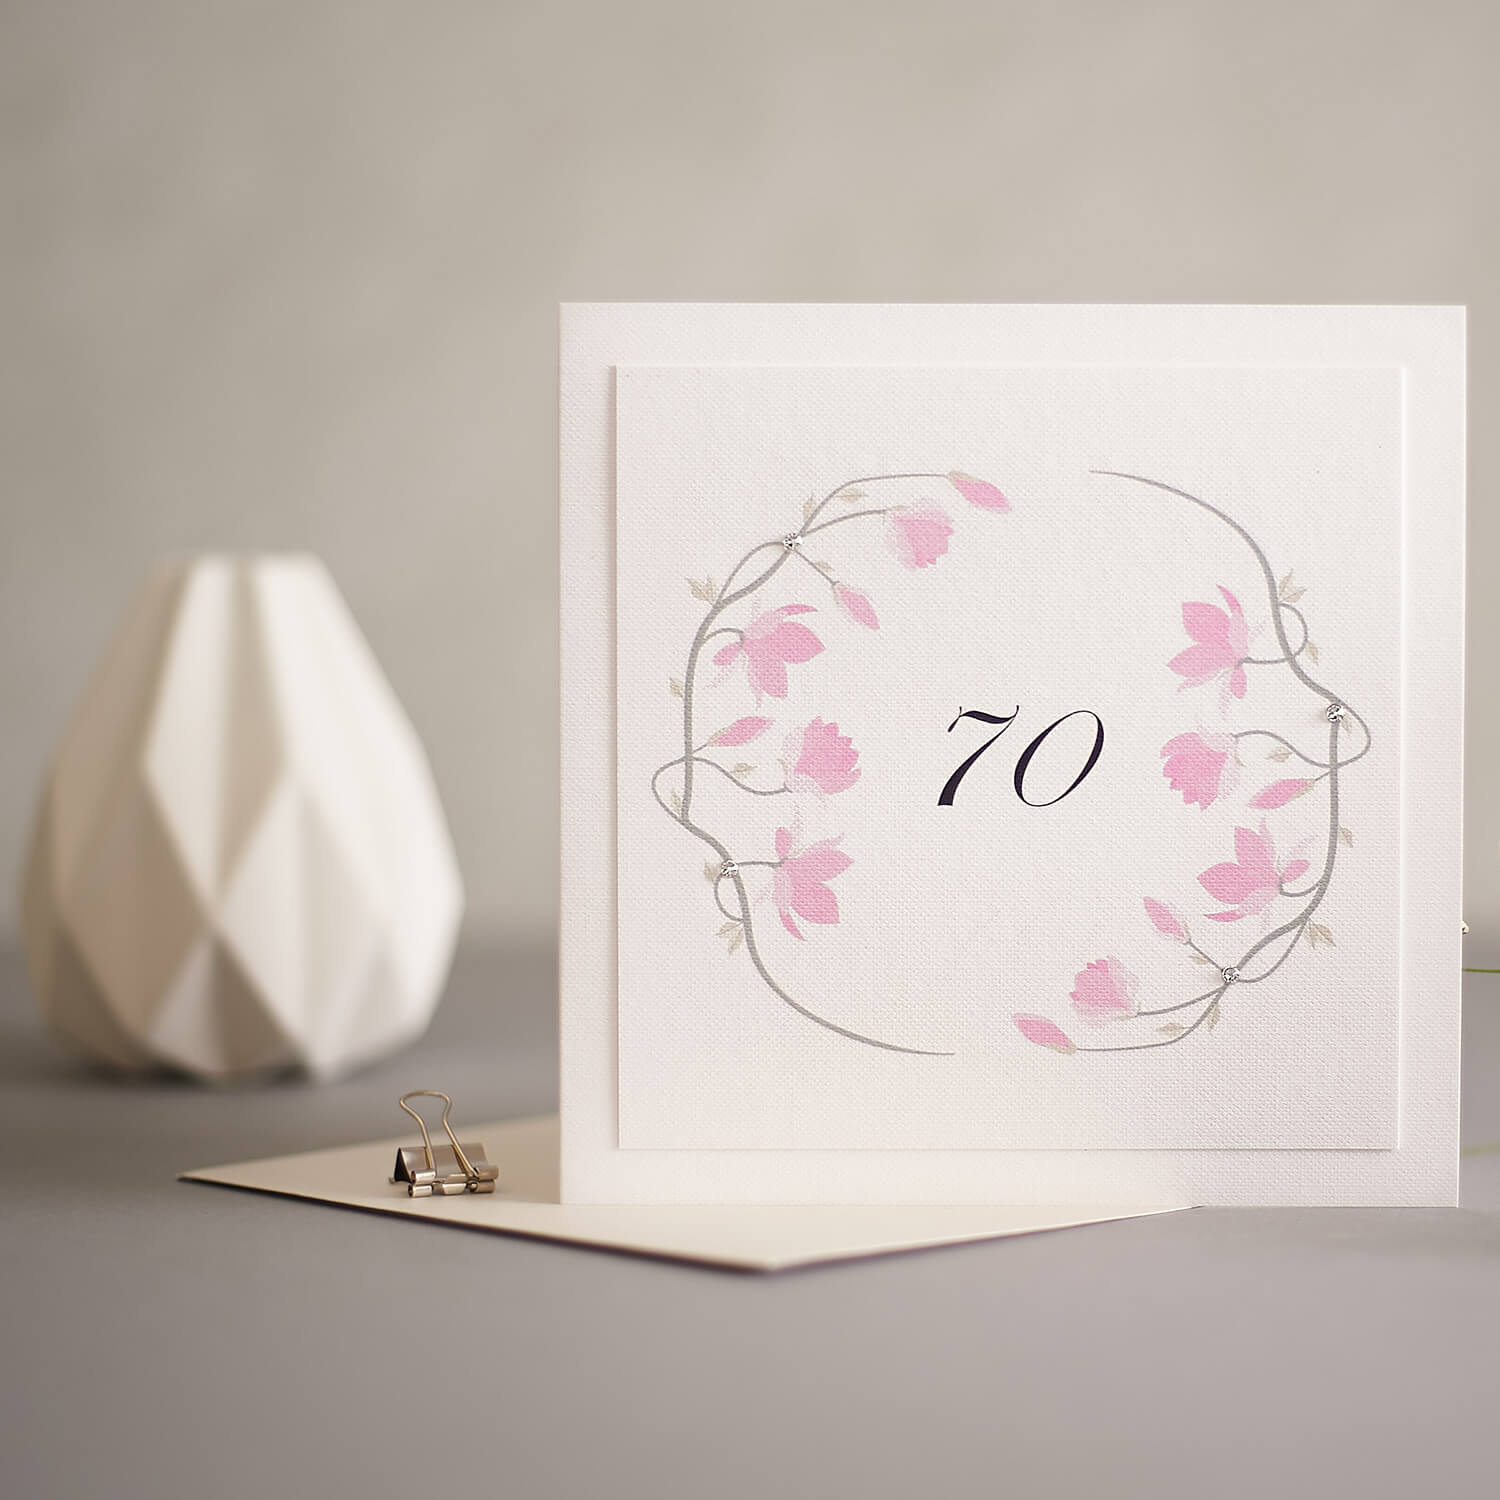 Softly lit greetings card image with geometric modern props